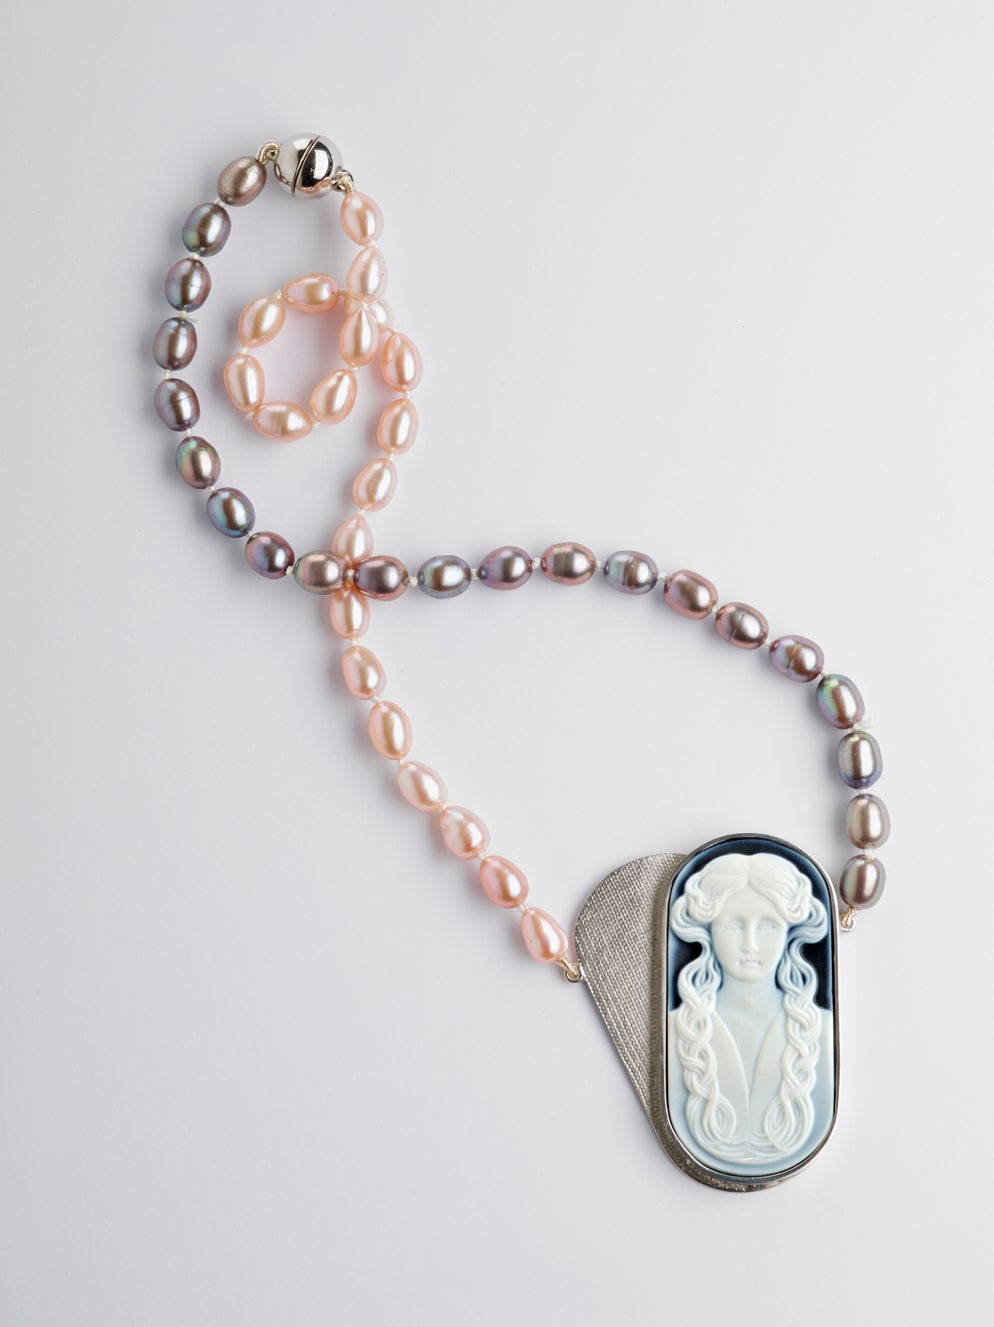 Image of 'Précieuses envies' necklace with onyx cameo and pearls - halsketting in zilver parels en camee